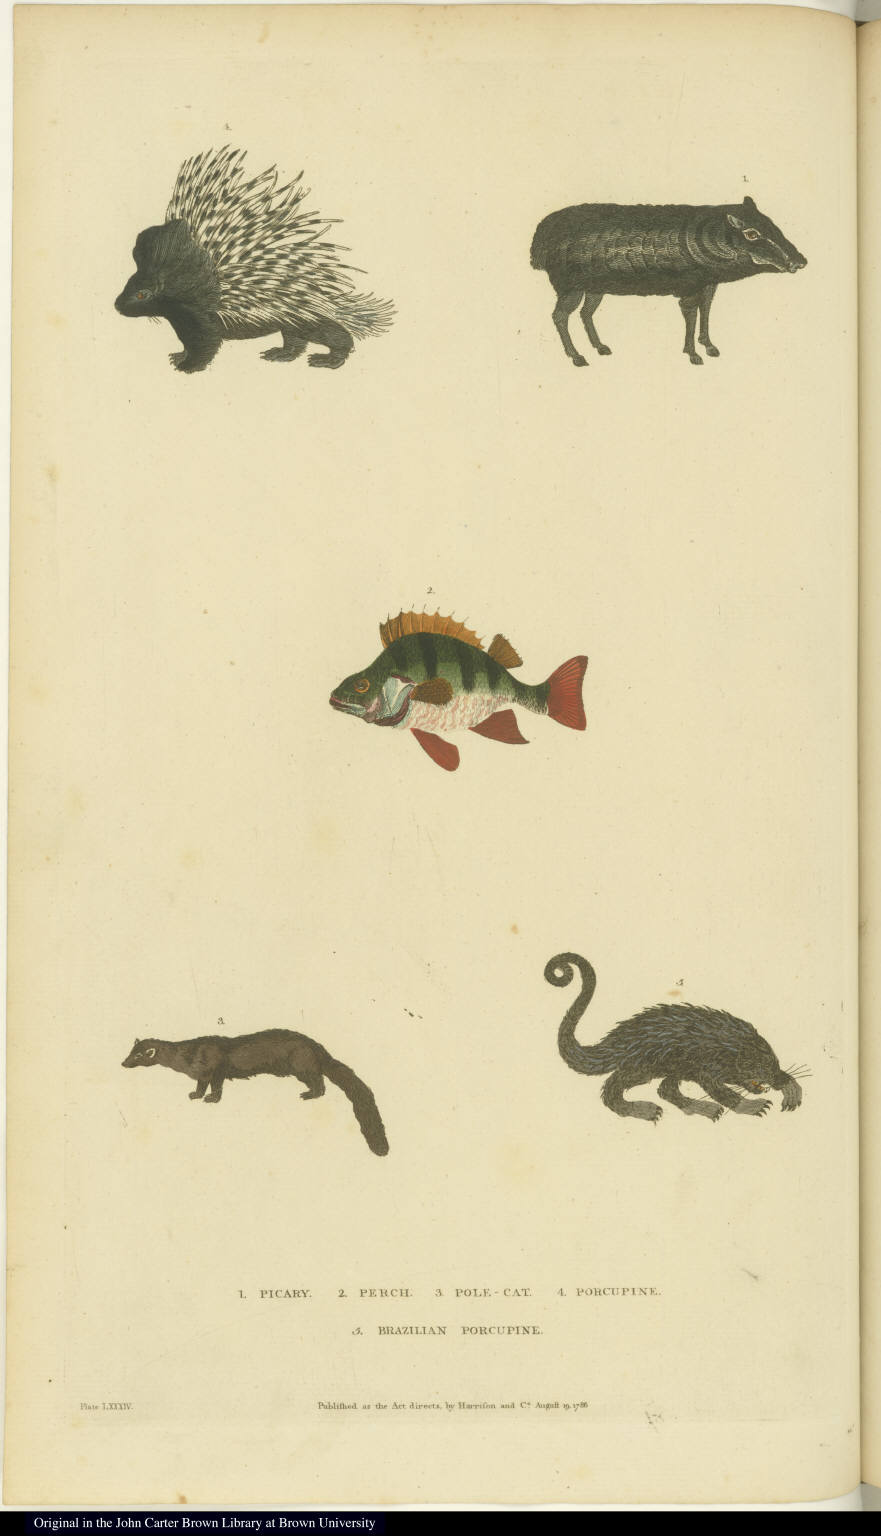 [Peccary, perch, polecat, and porcupines]